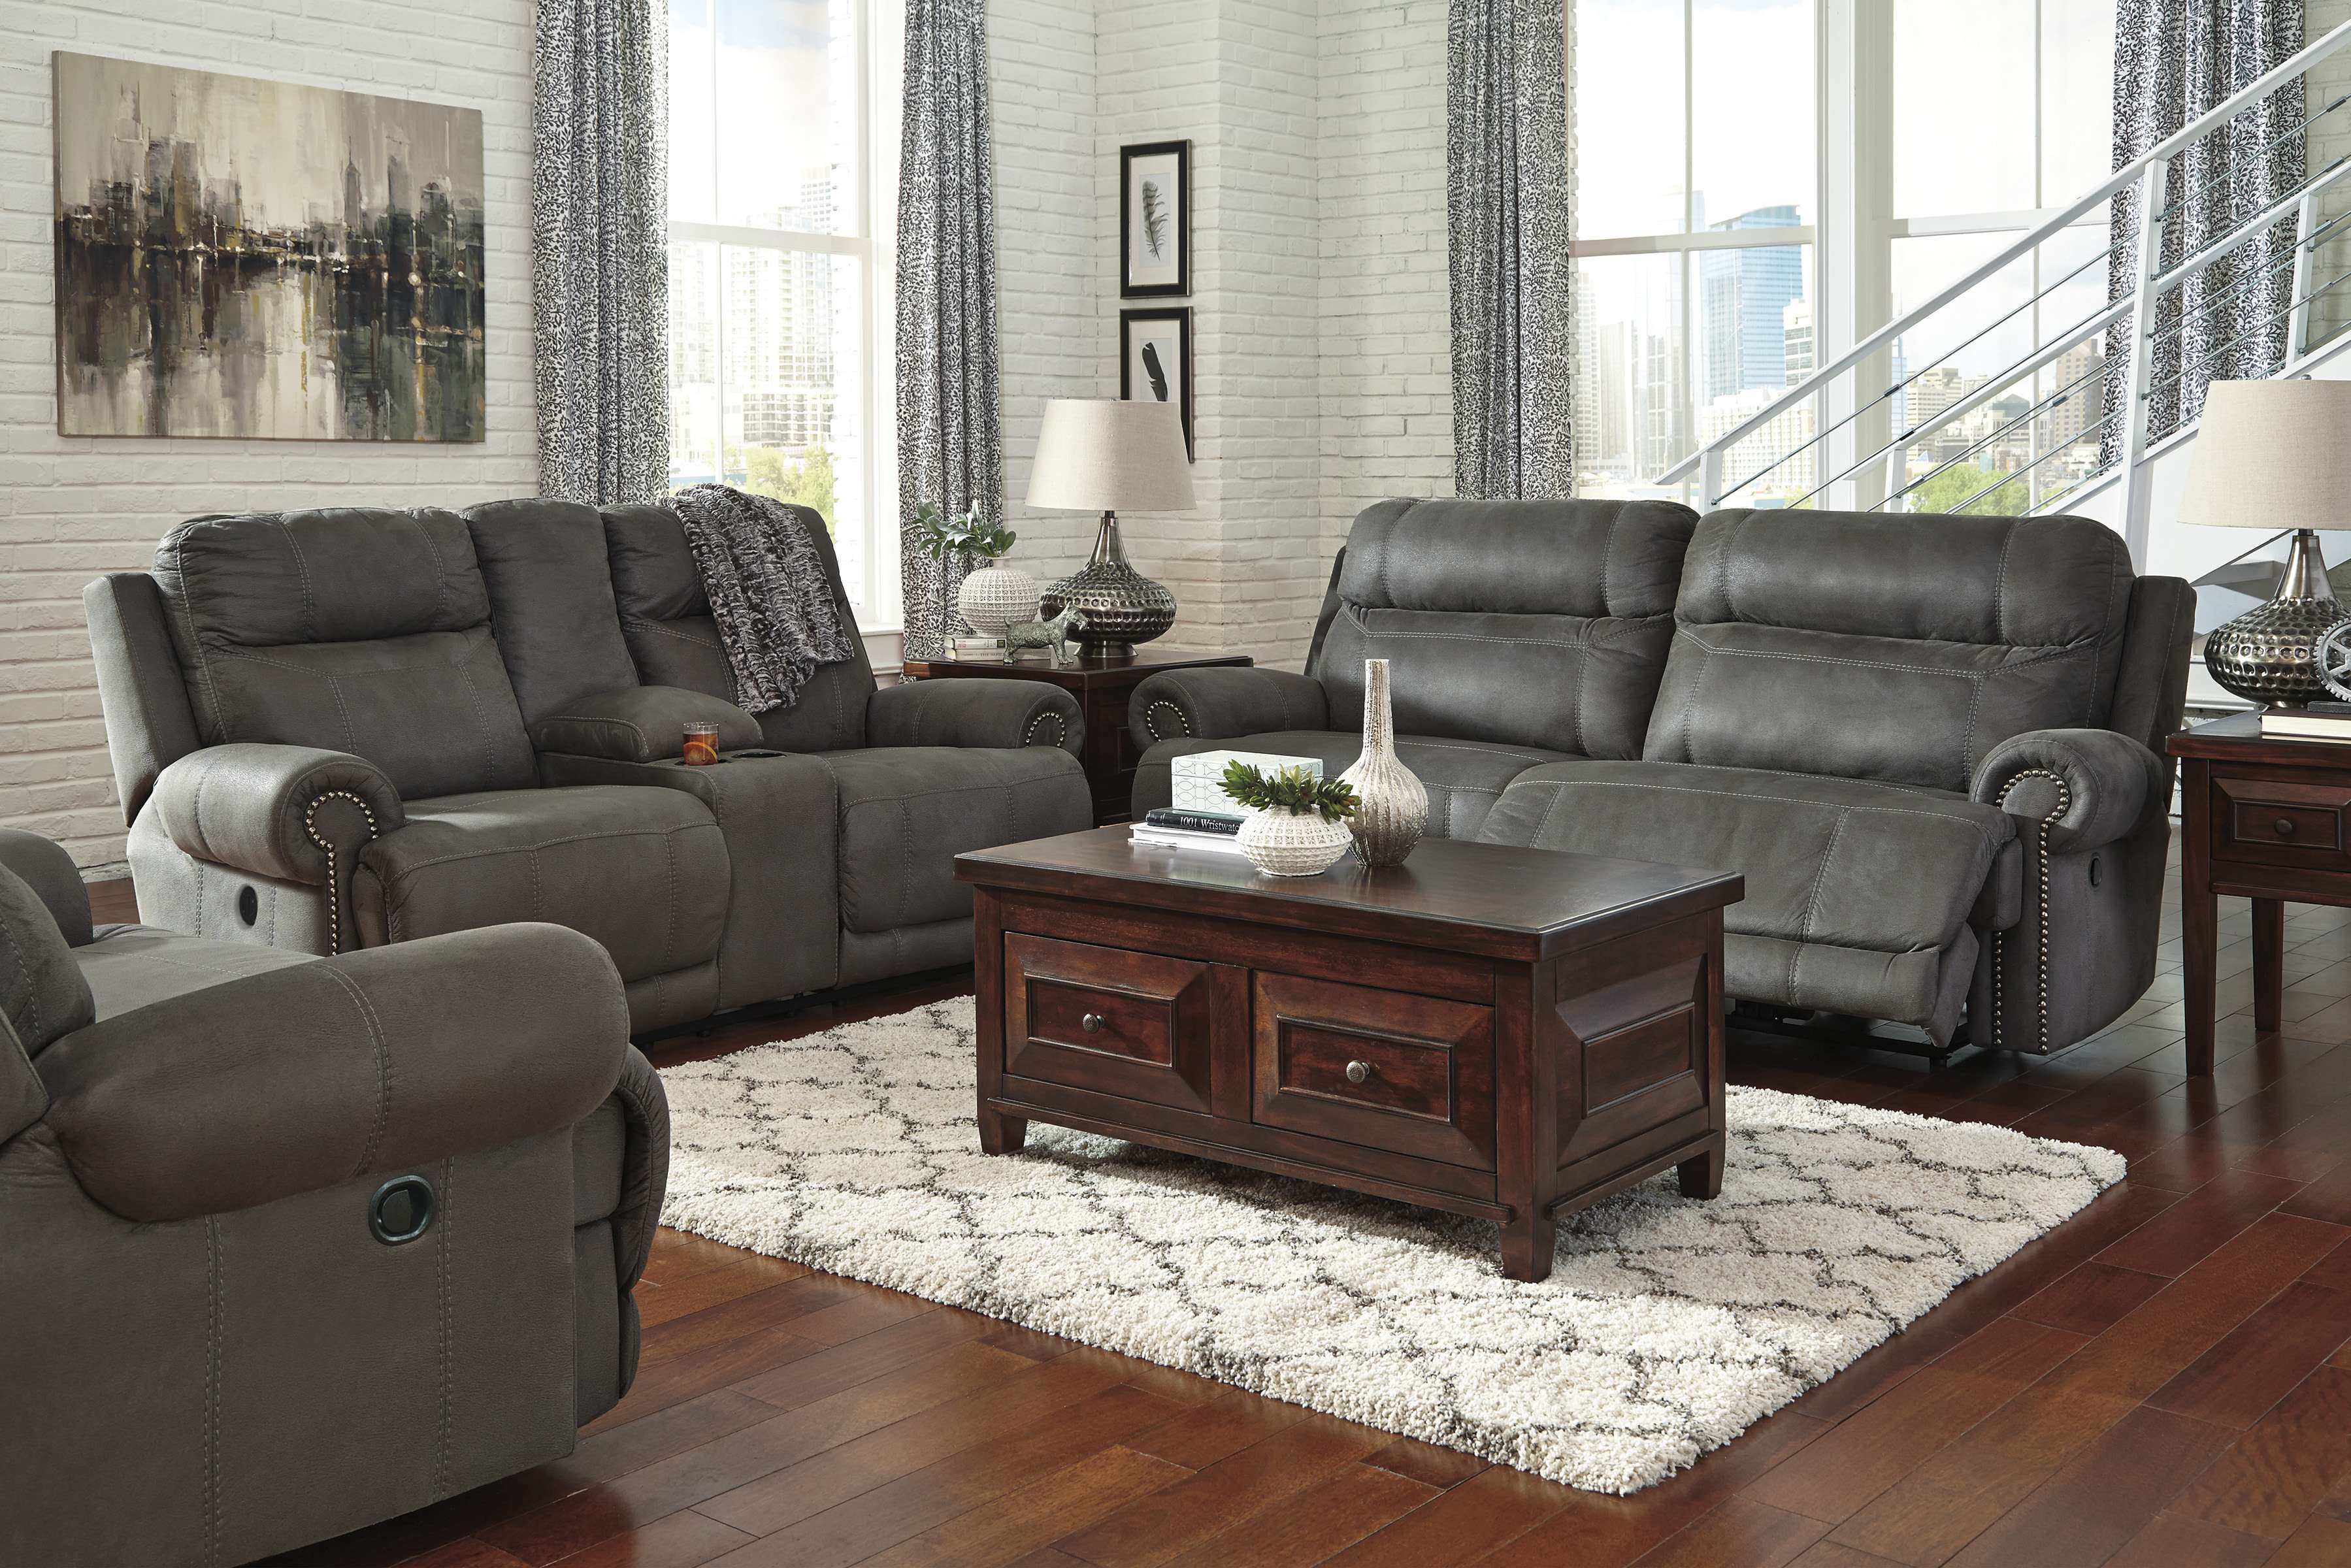 Signature Design Ashley 3840181 3840194 3840152 throughout 12 Genius Initiatives of How to Makeover Living Room 3 Piece Sets